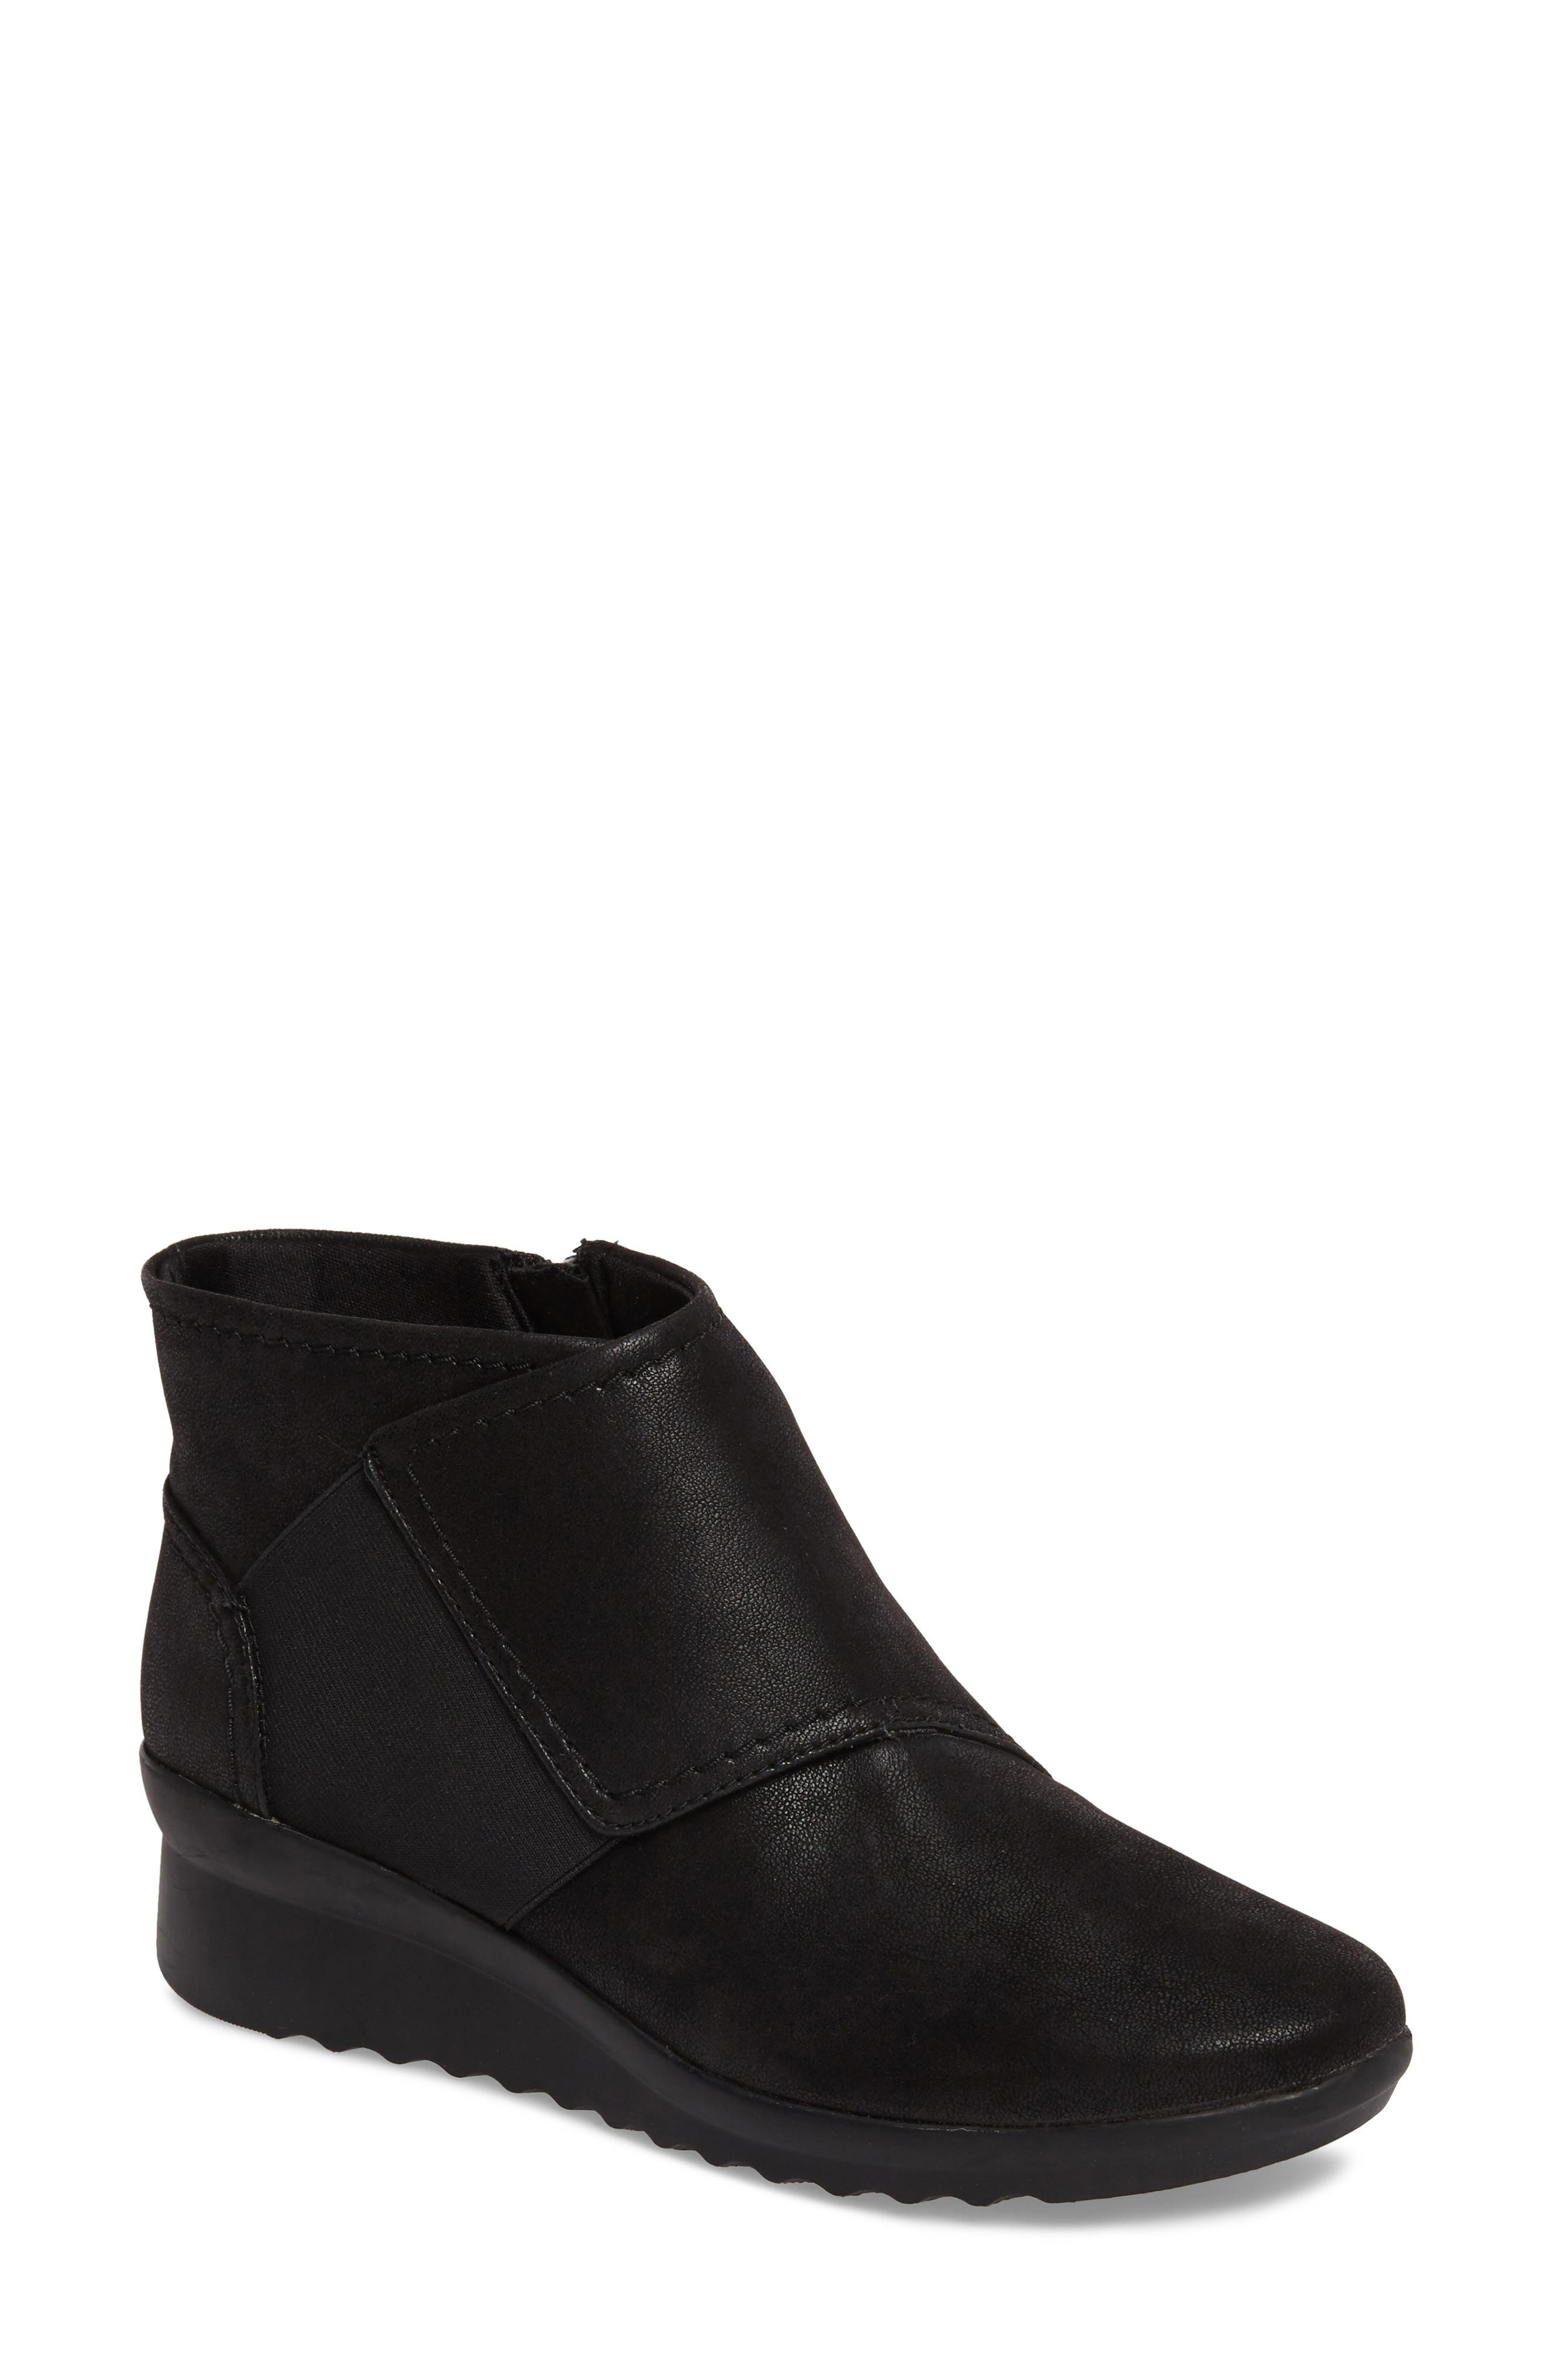 Caddell Rush Bootie,                             Main thumbnail 1, color,